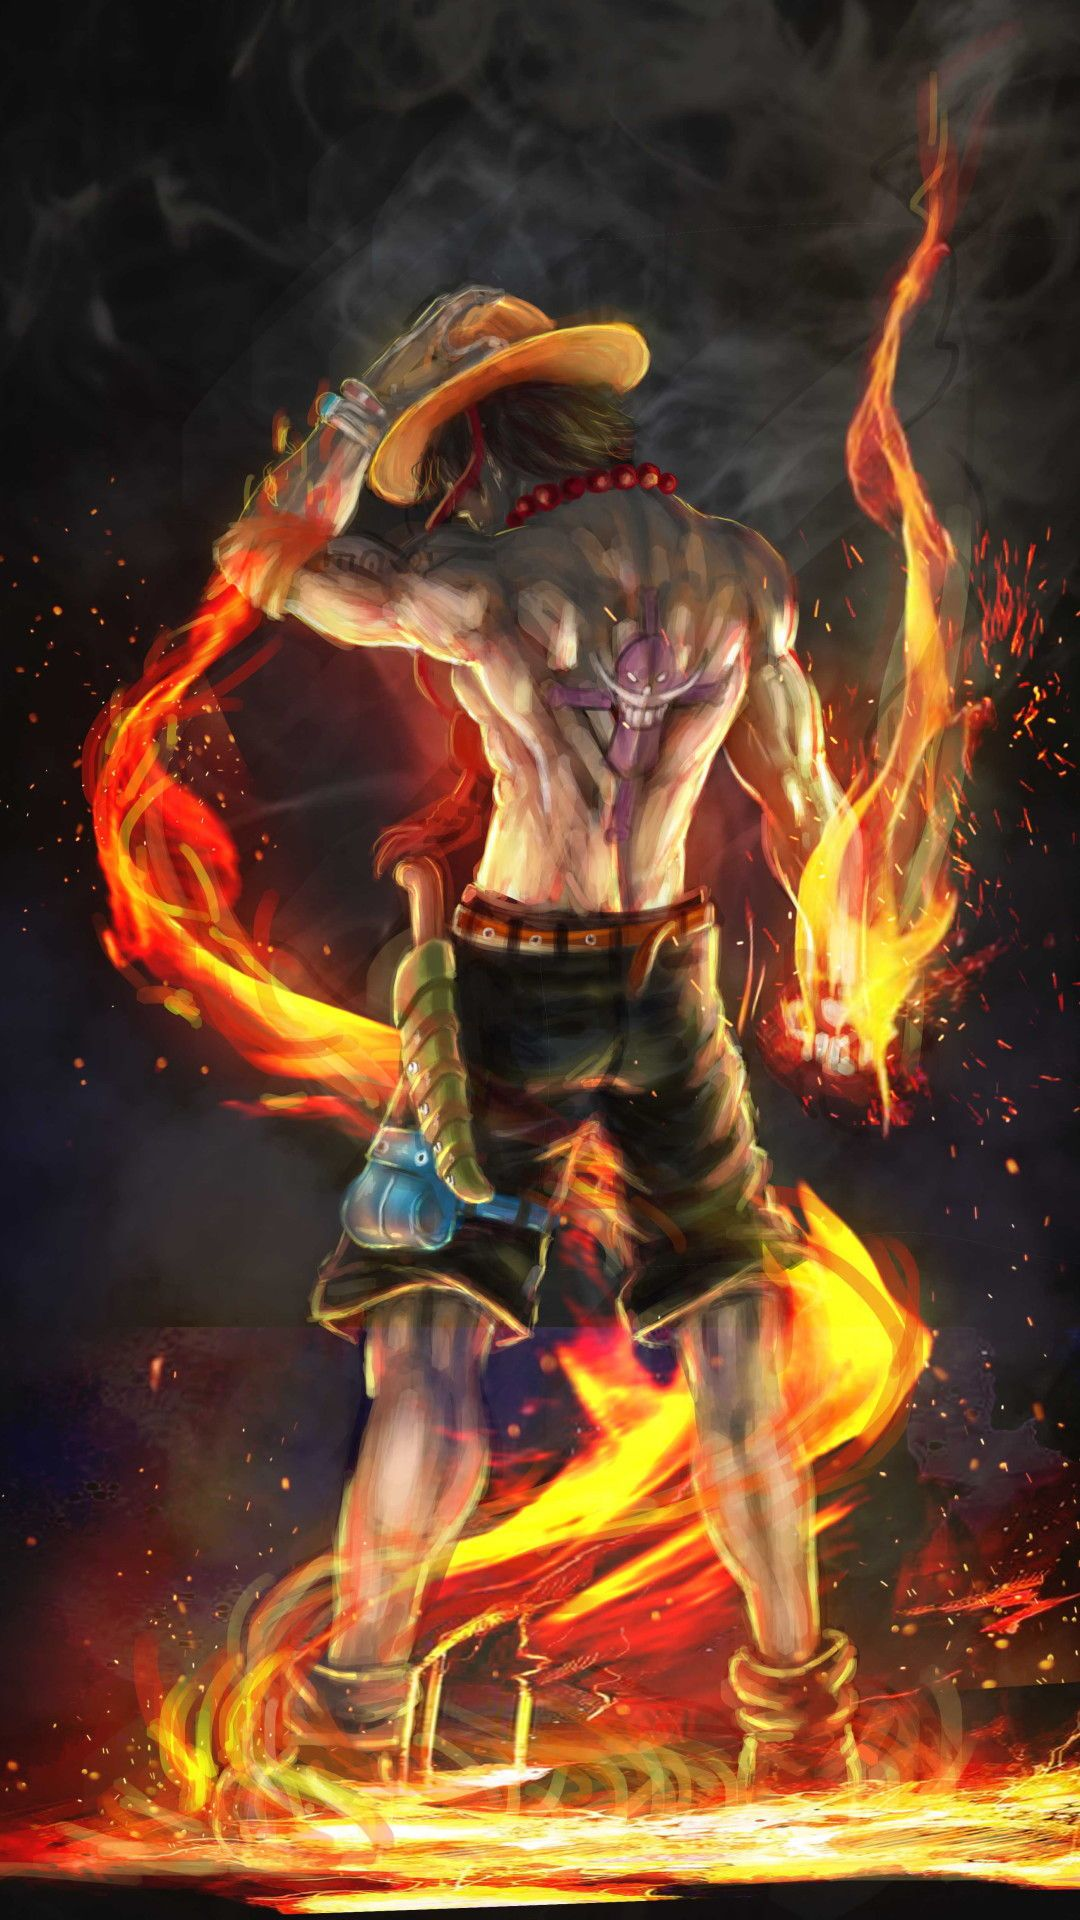 First Fist Ace One Piece in 2020 Download cute